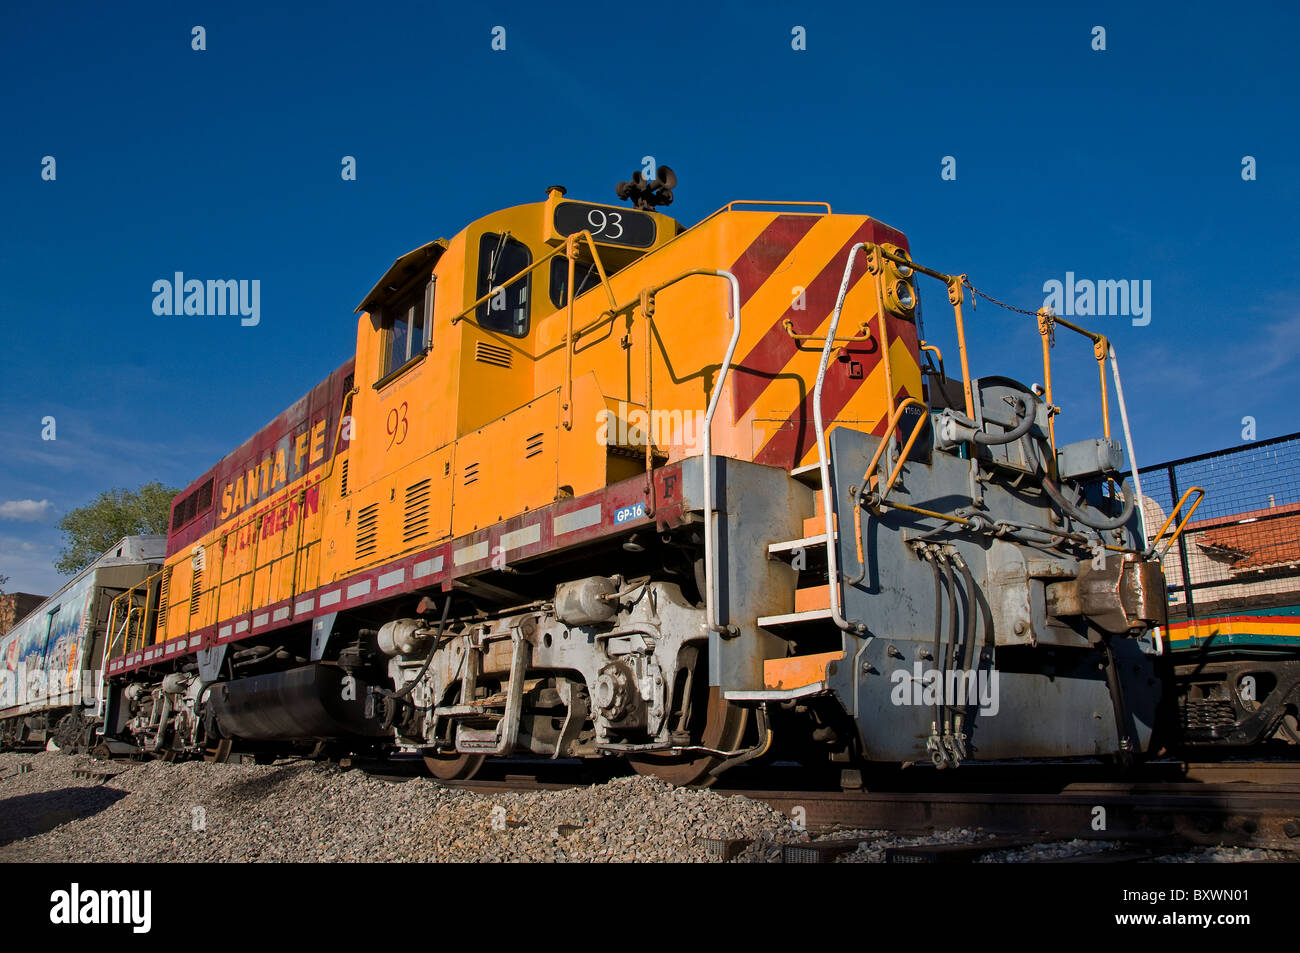 Locomotive engine - Stock Image